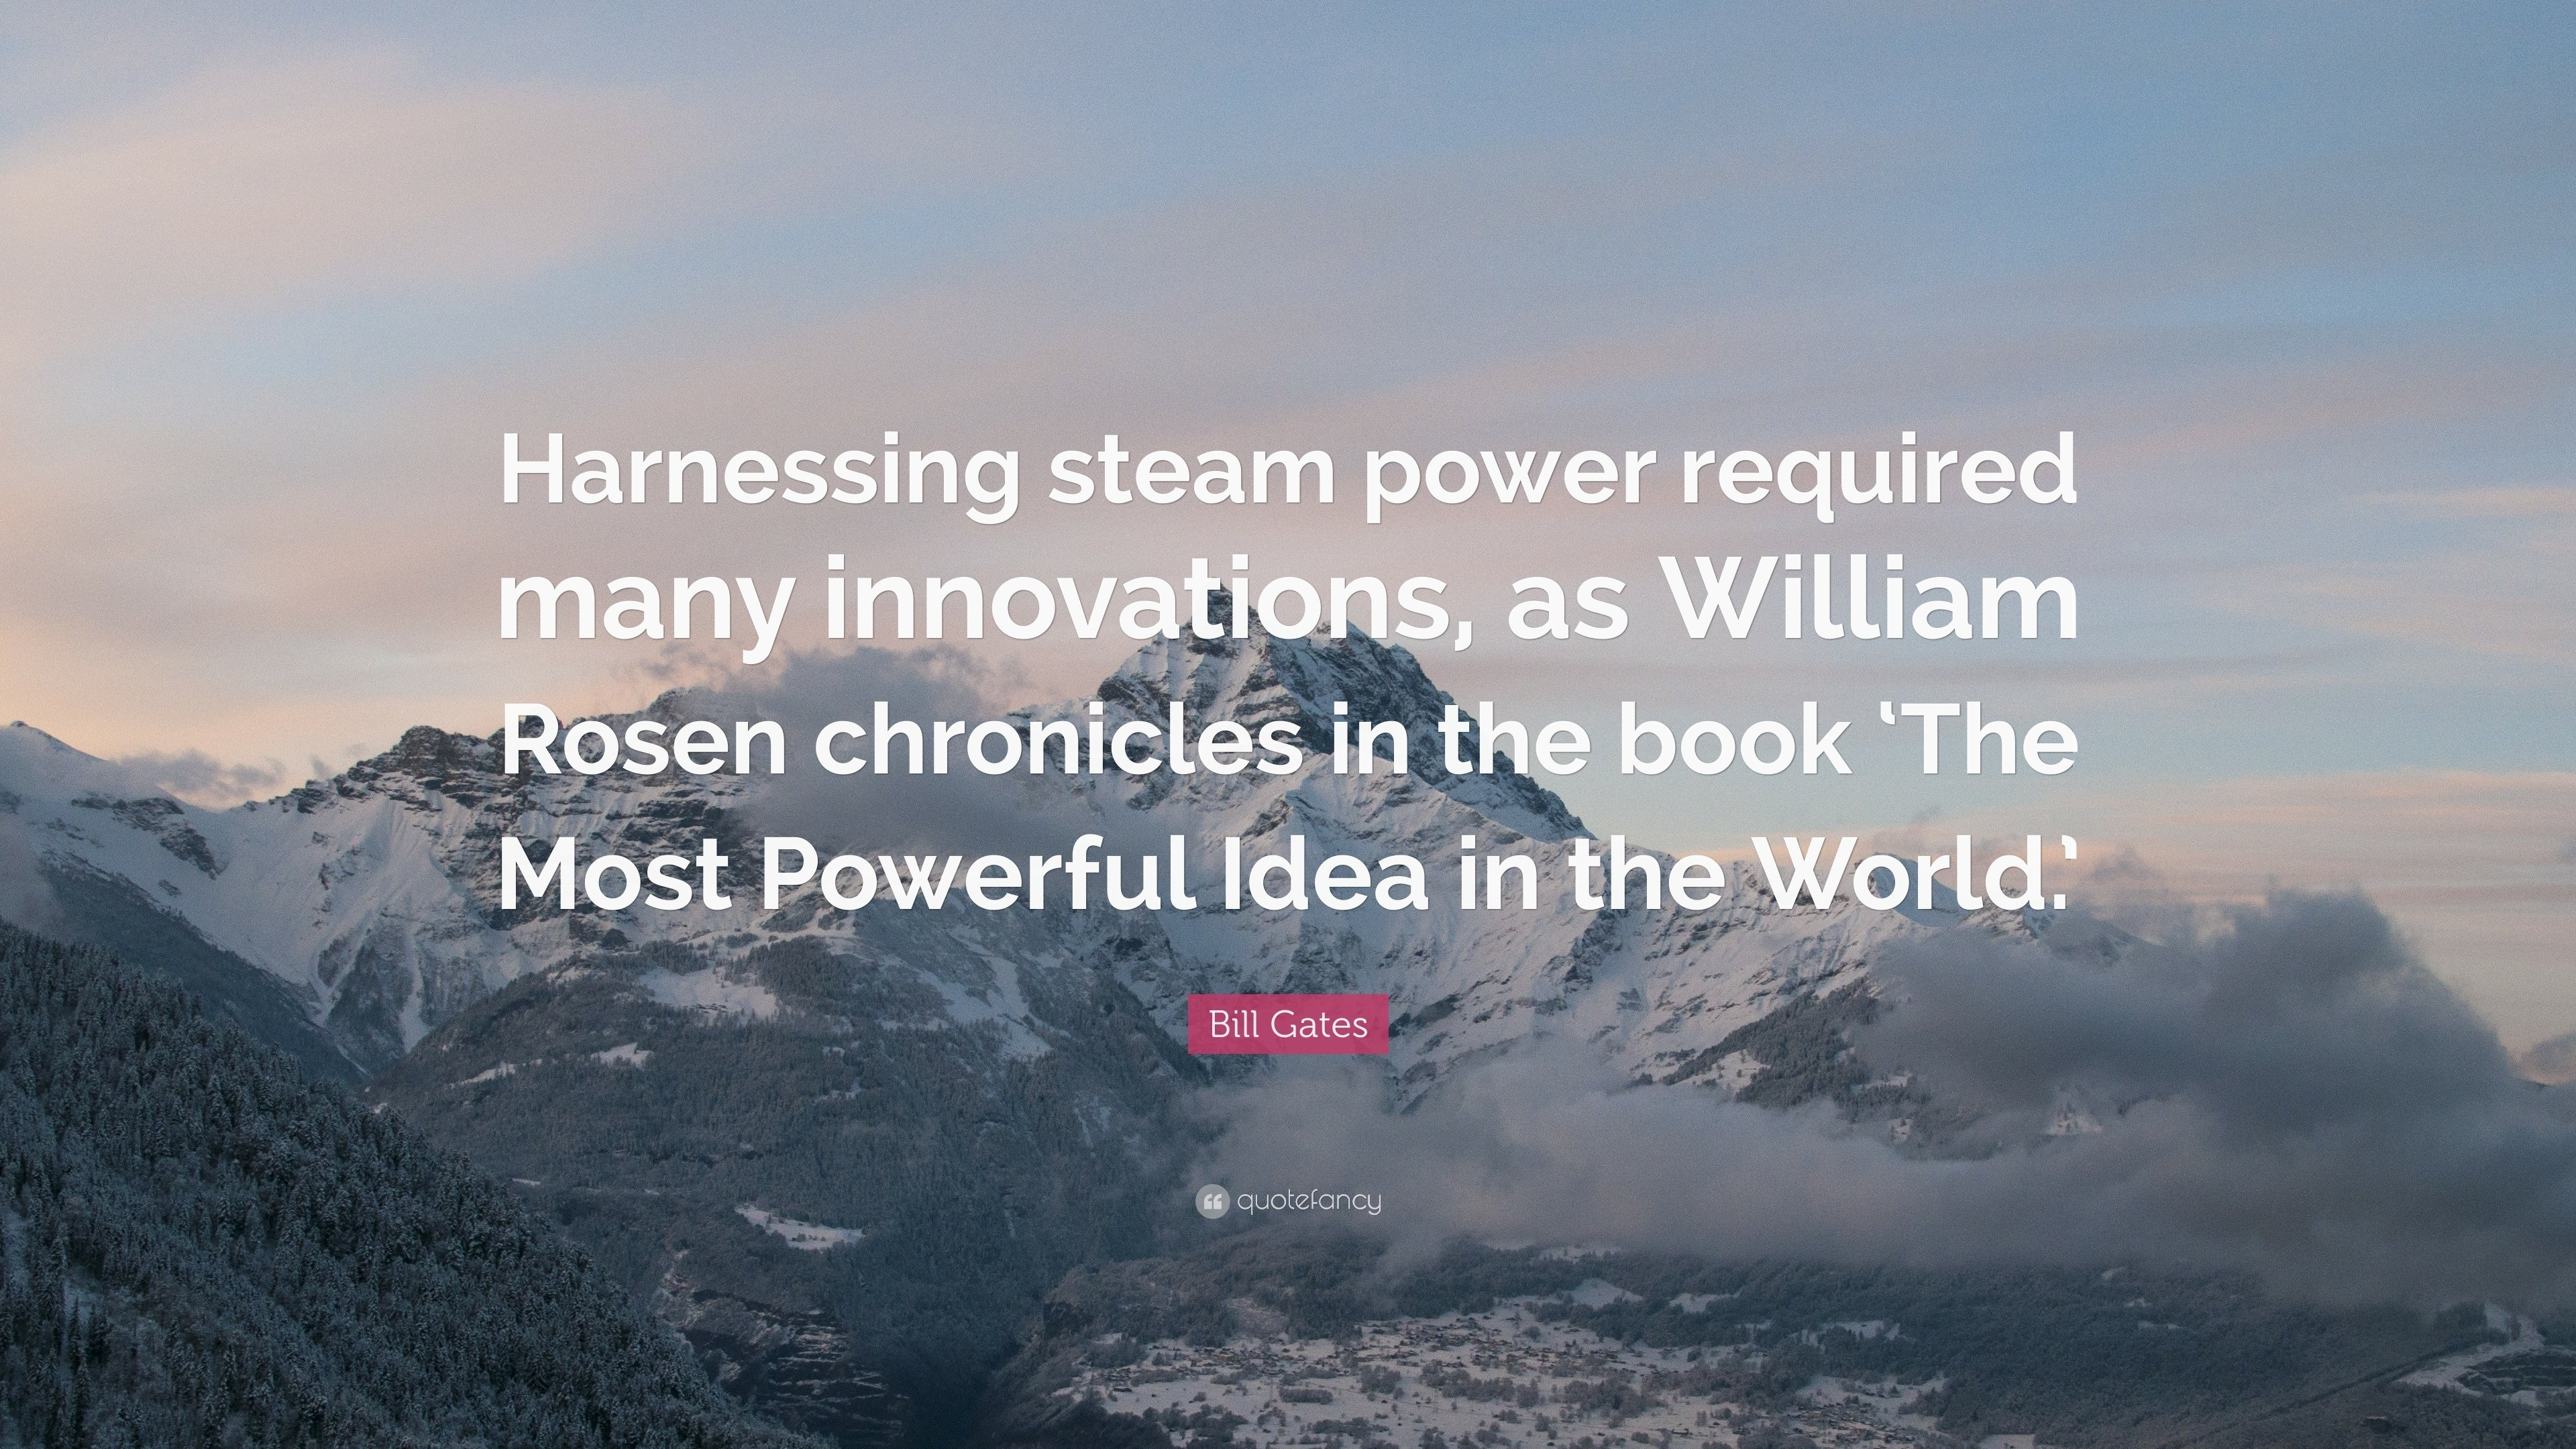 10 Amazing The Most Powerful Idea In The World bill gates quote harnessing steam power required many innovations 2 2021